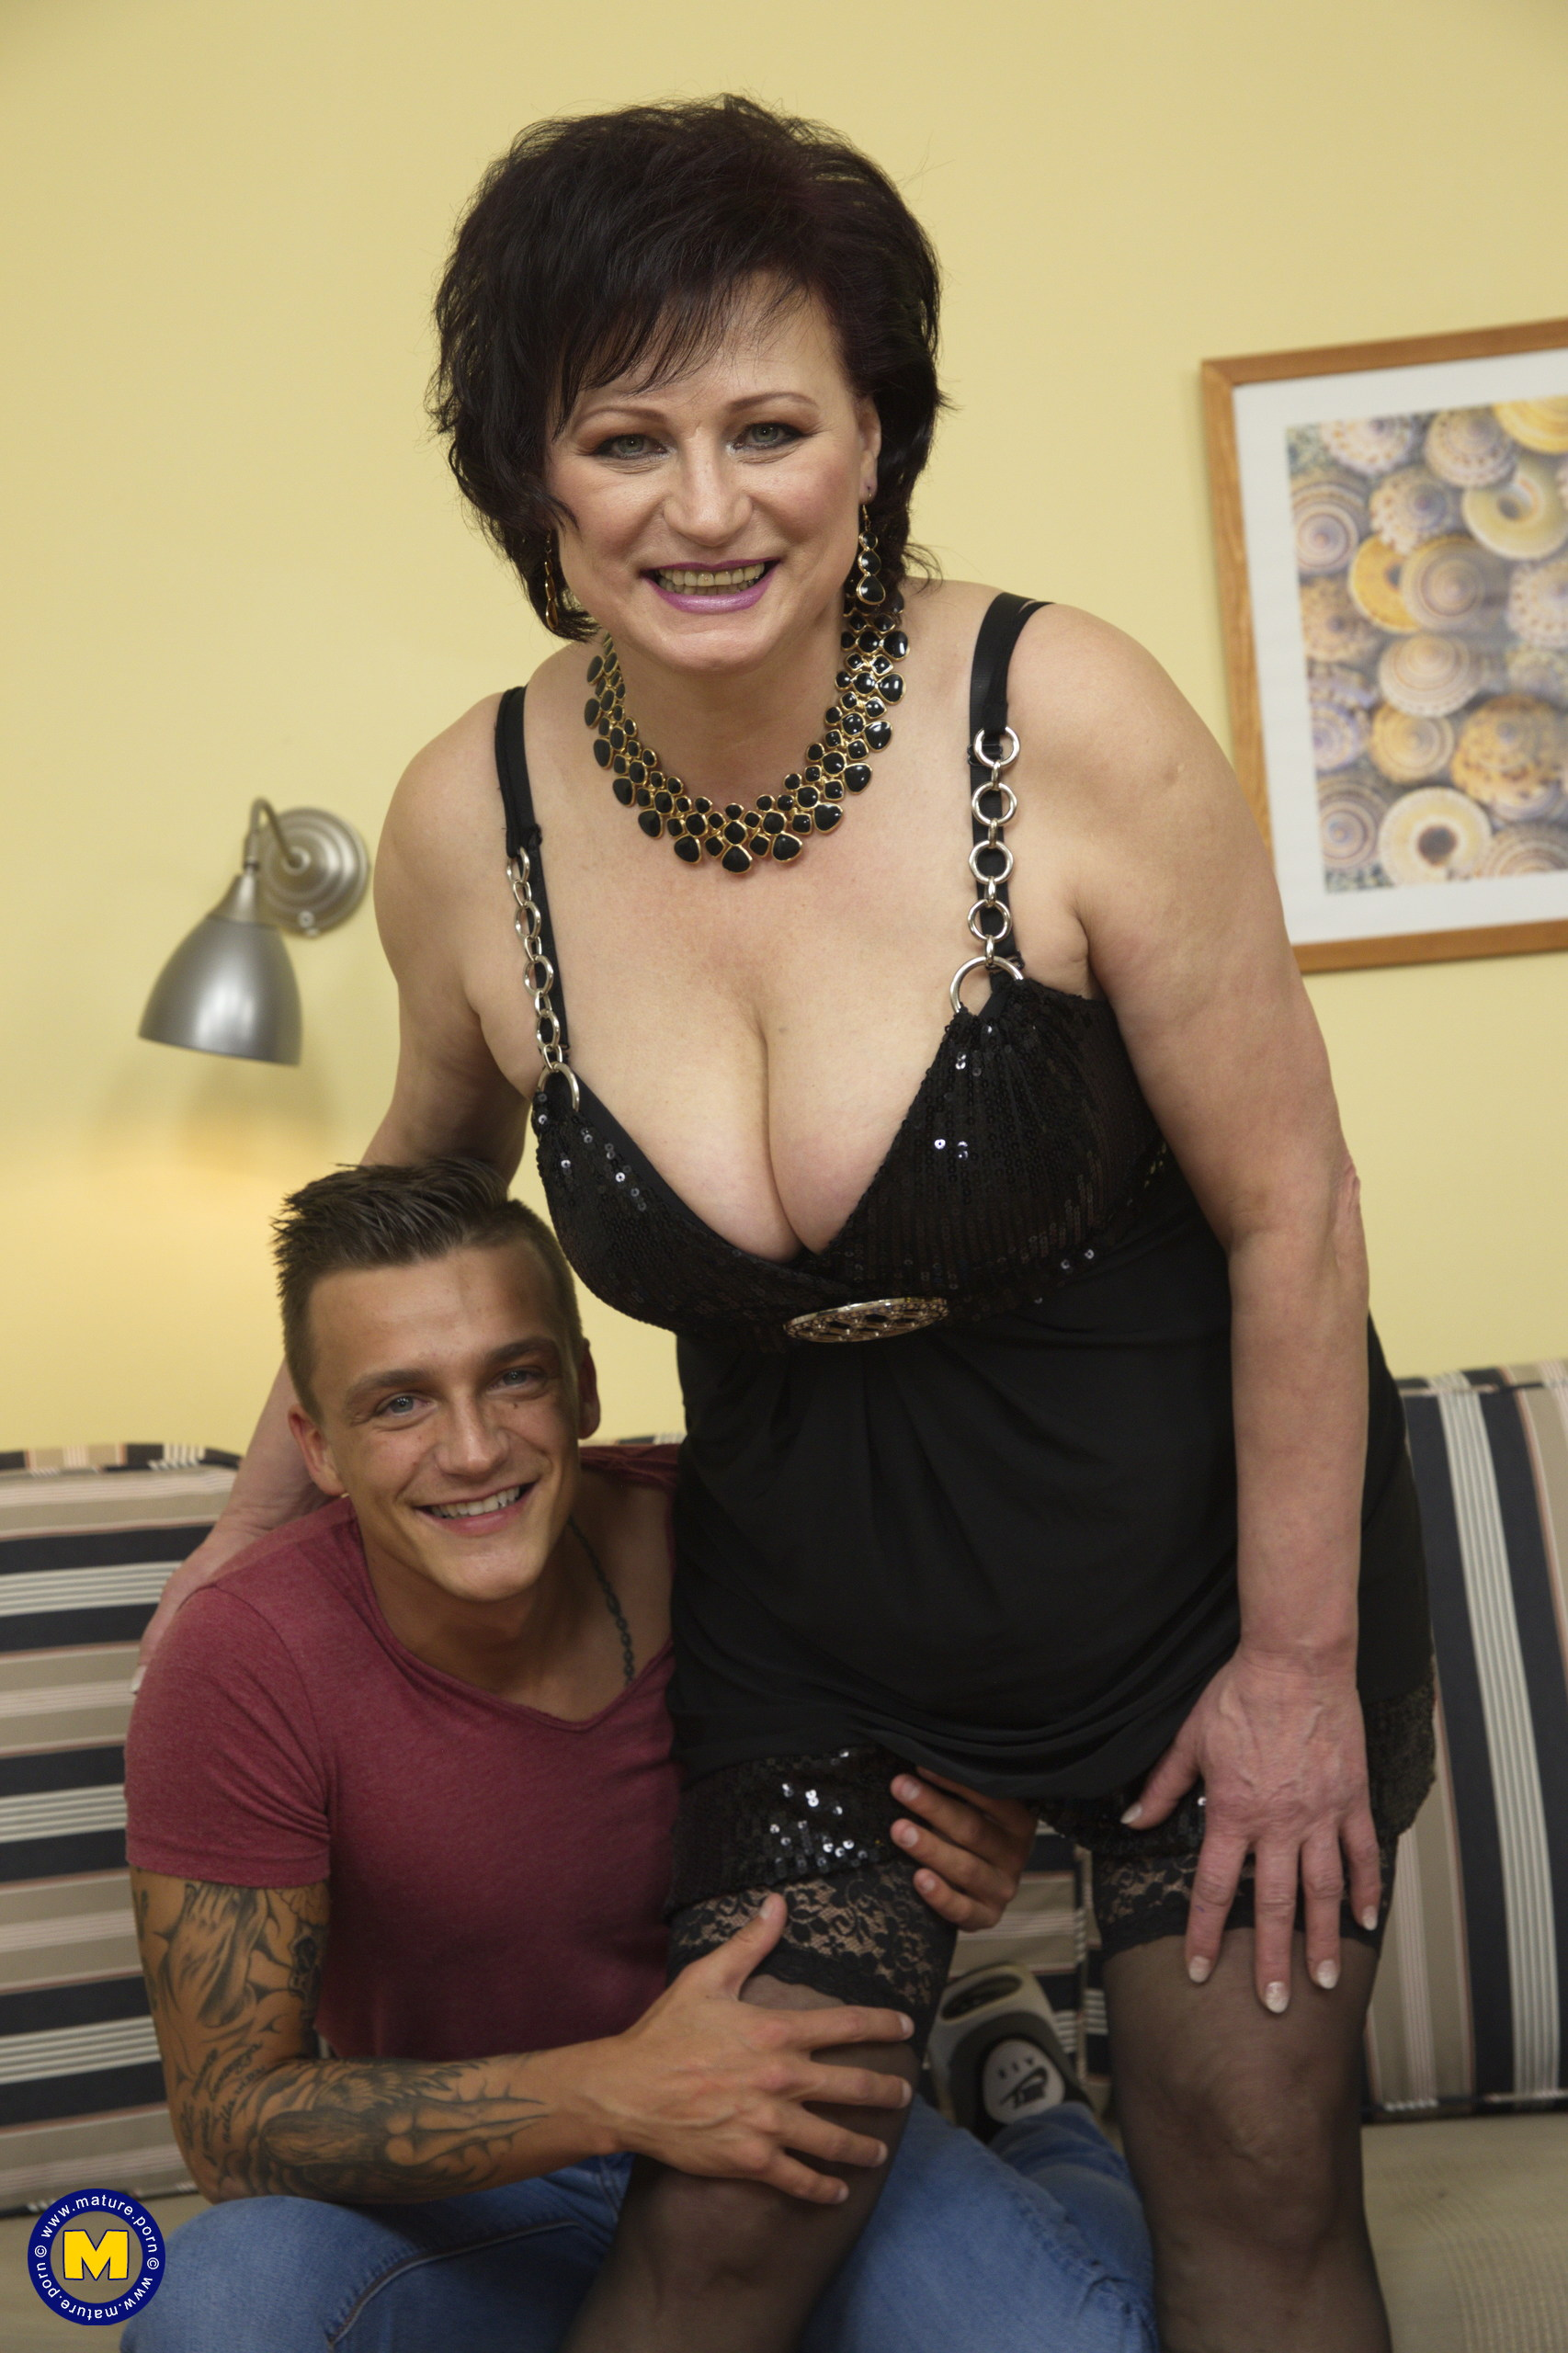 Horny German housewife fooling around with her toy boy